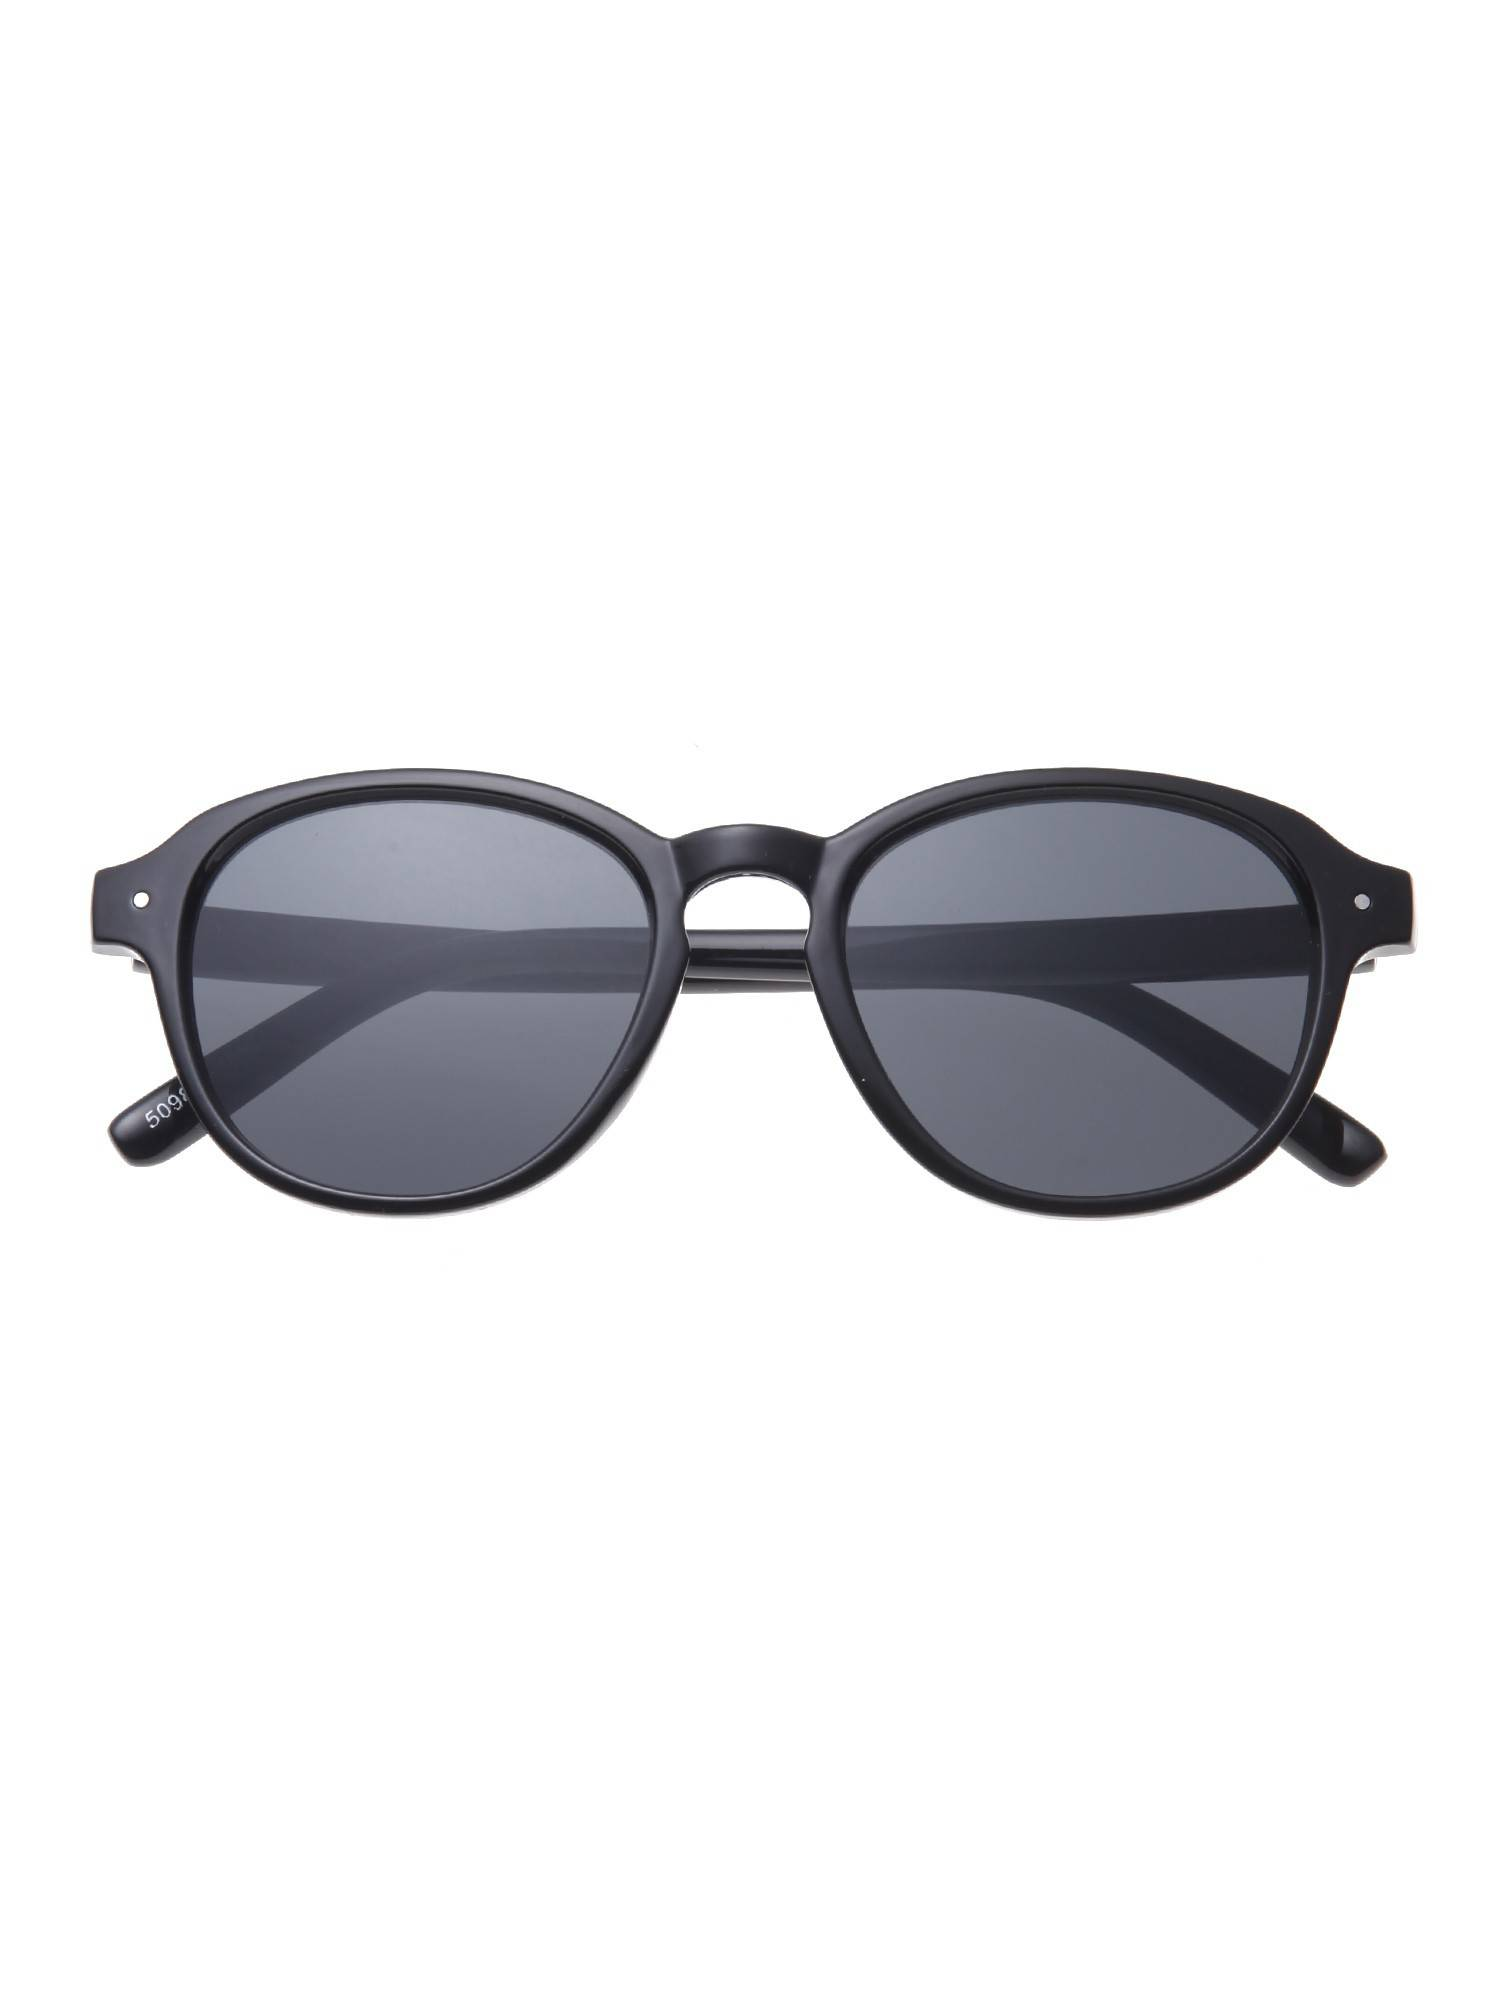 SEMI flat boss Lynton sunglasses